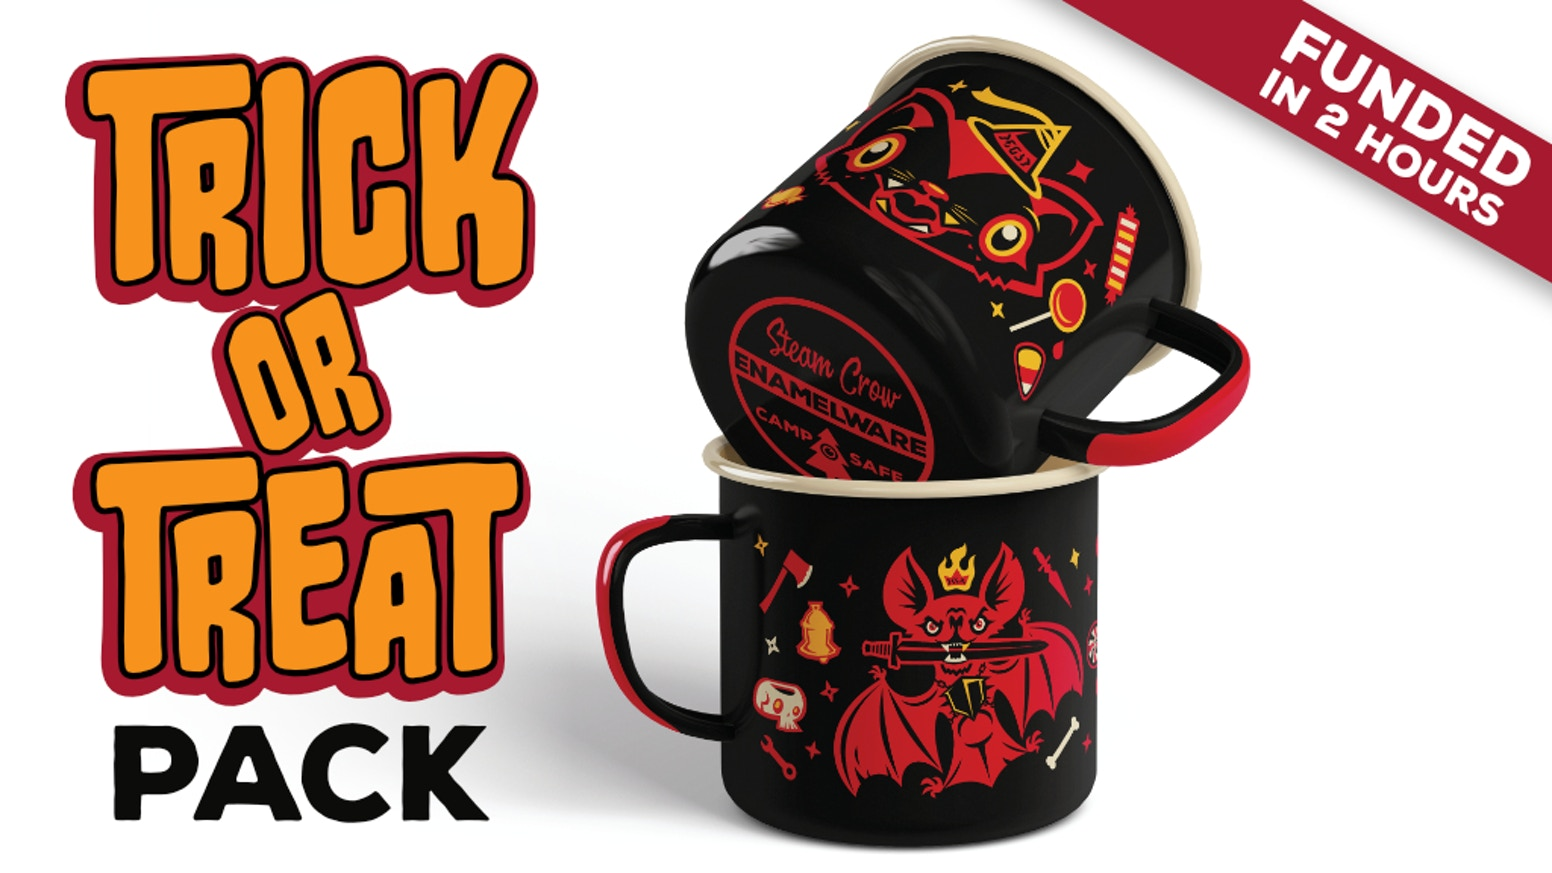 Trick OR Treat Halloween Pack by Steam Crow » First Bonus Button